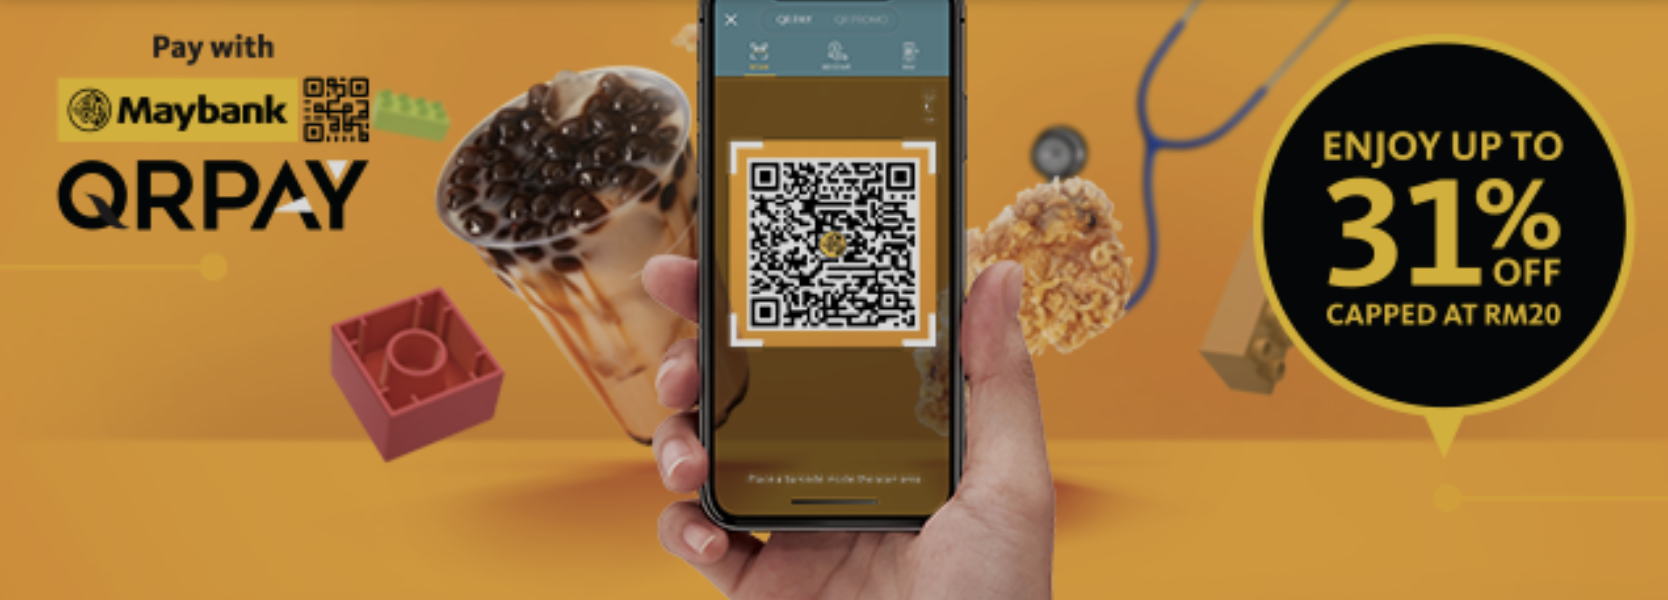 Maybank-QR-Pay-Promo - LifeStyle